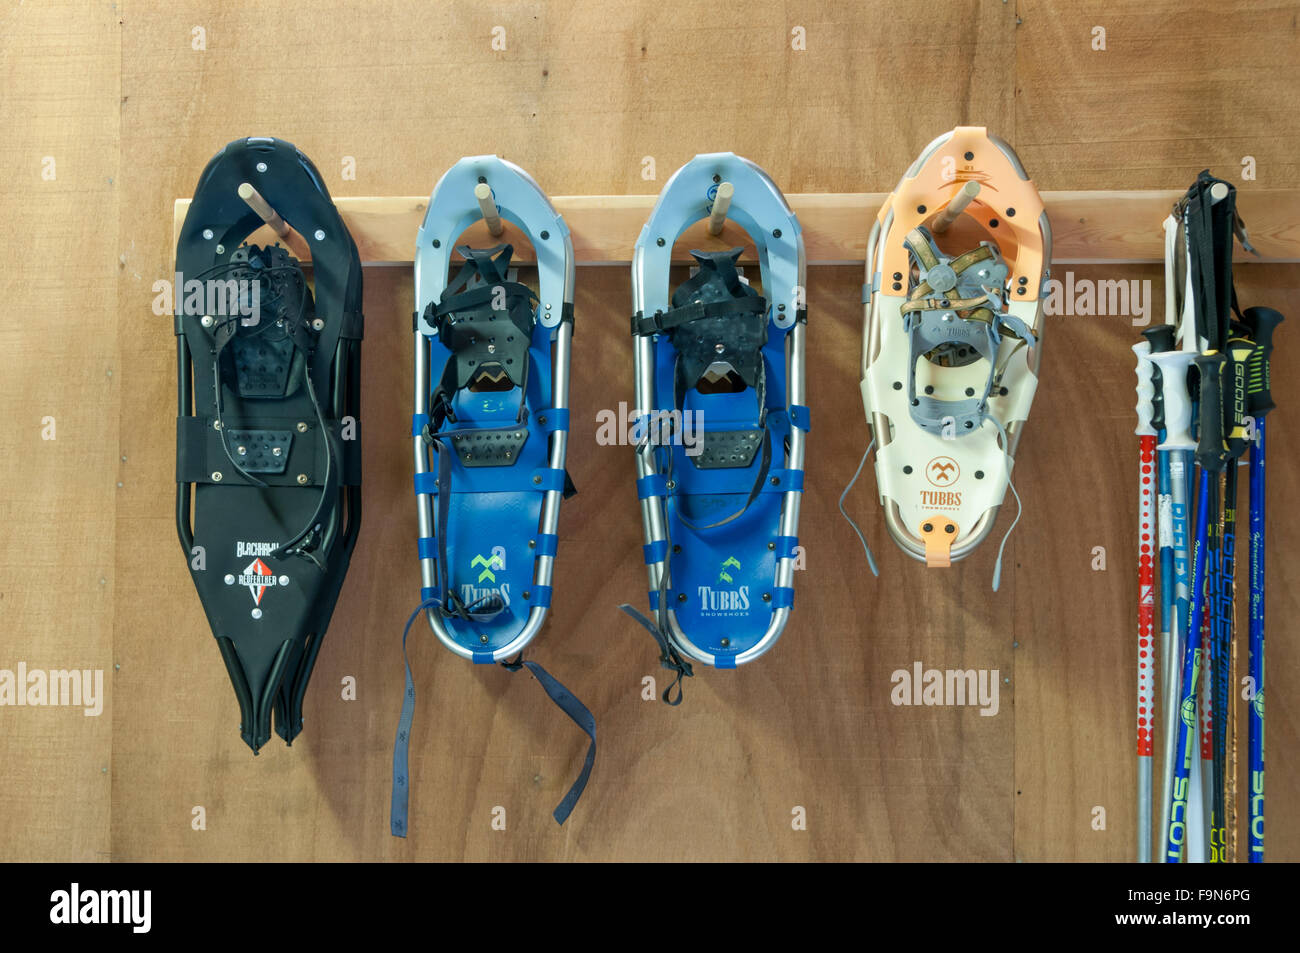 Pairs of snowshoes hanging up waiting for the winter snow and sports season. - Stock Image